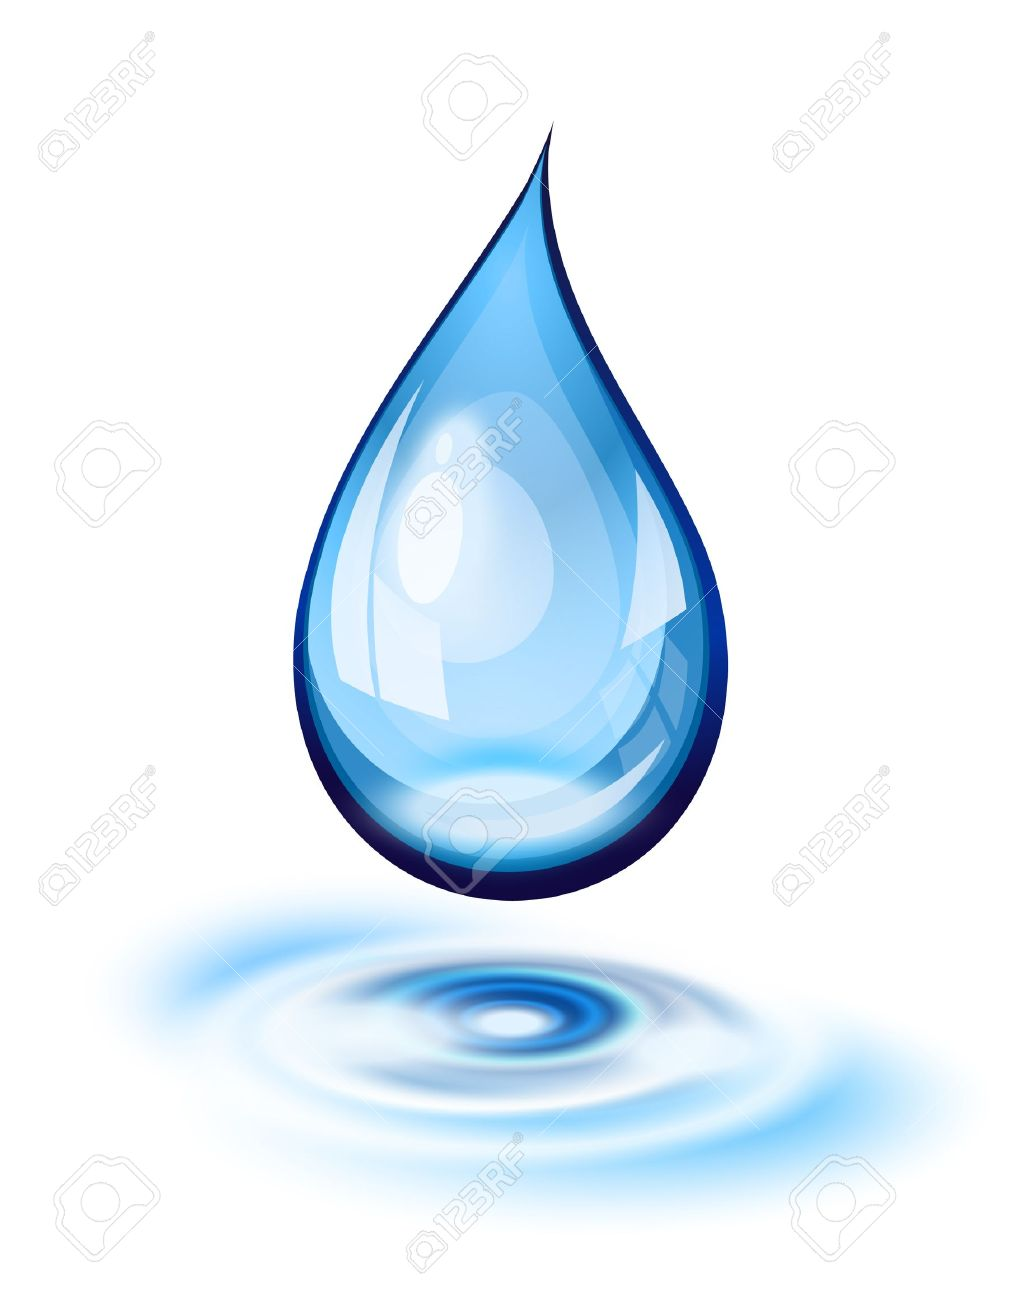 Water Droplets clipart icon (Desktop Water  wallpapers Water